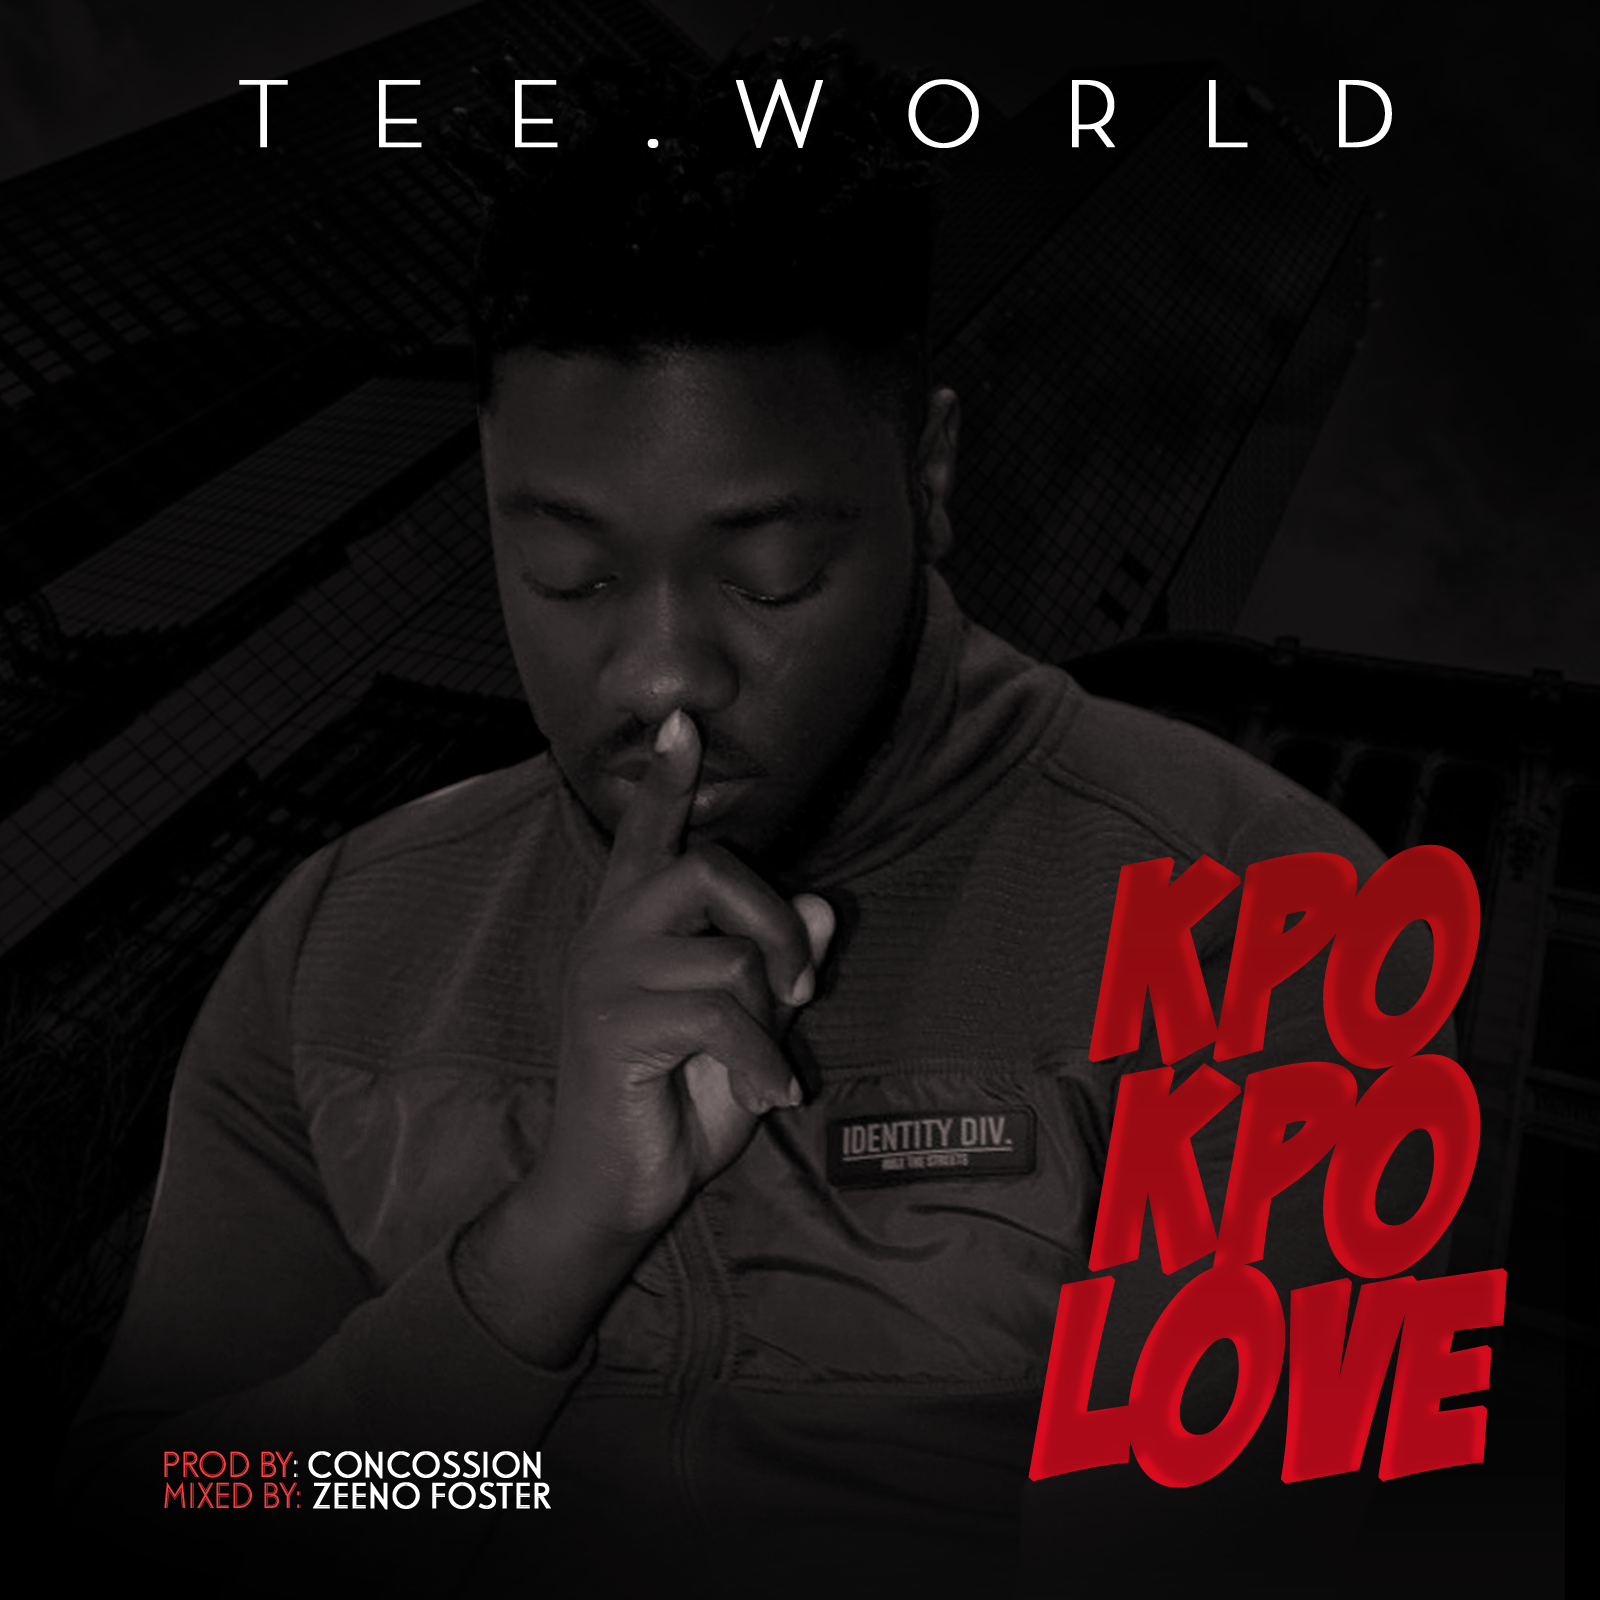 Music- Tee World- Kpo Kpo Love @Teeworld_